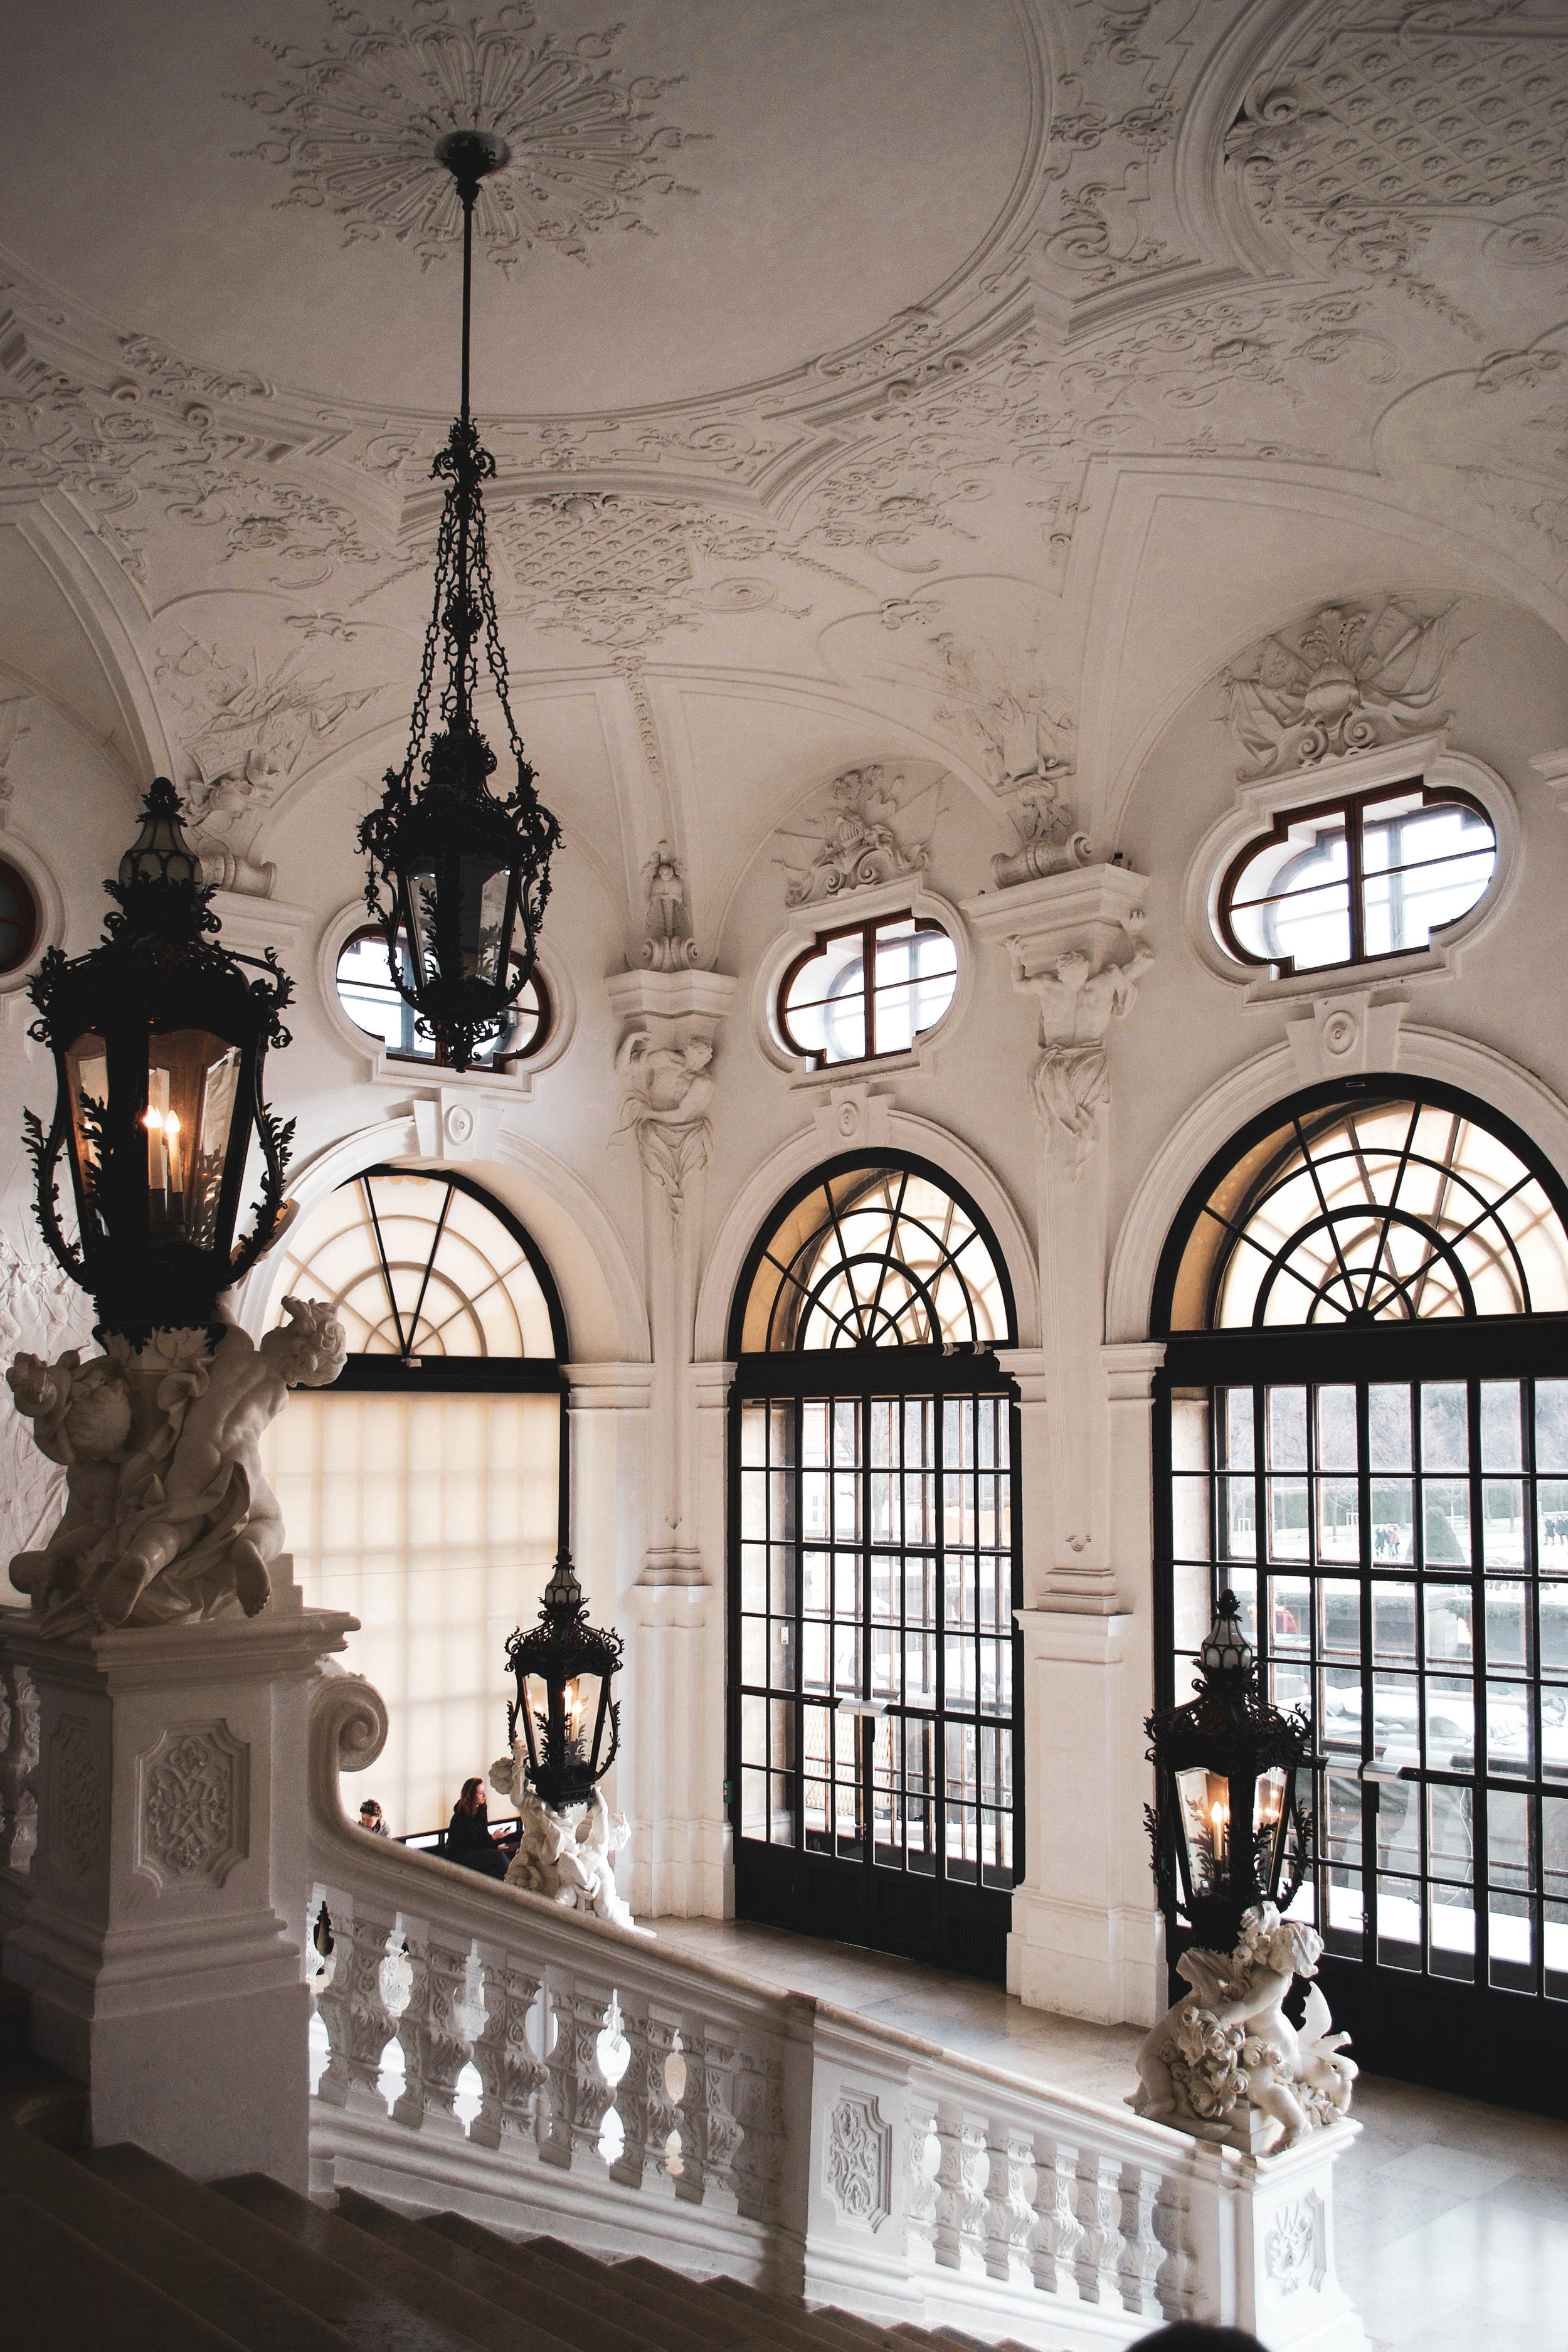 Copy of BelvederePalace_Vienna_Staircase.jpg